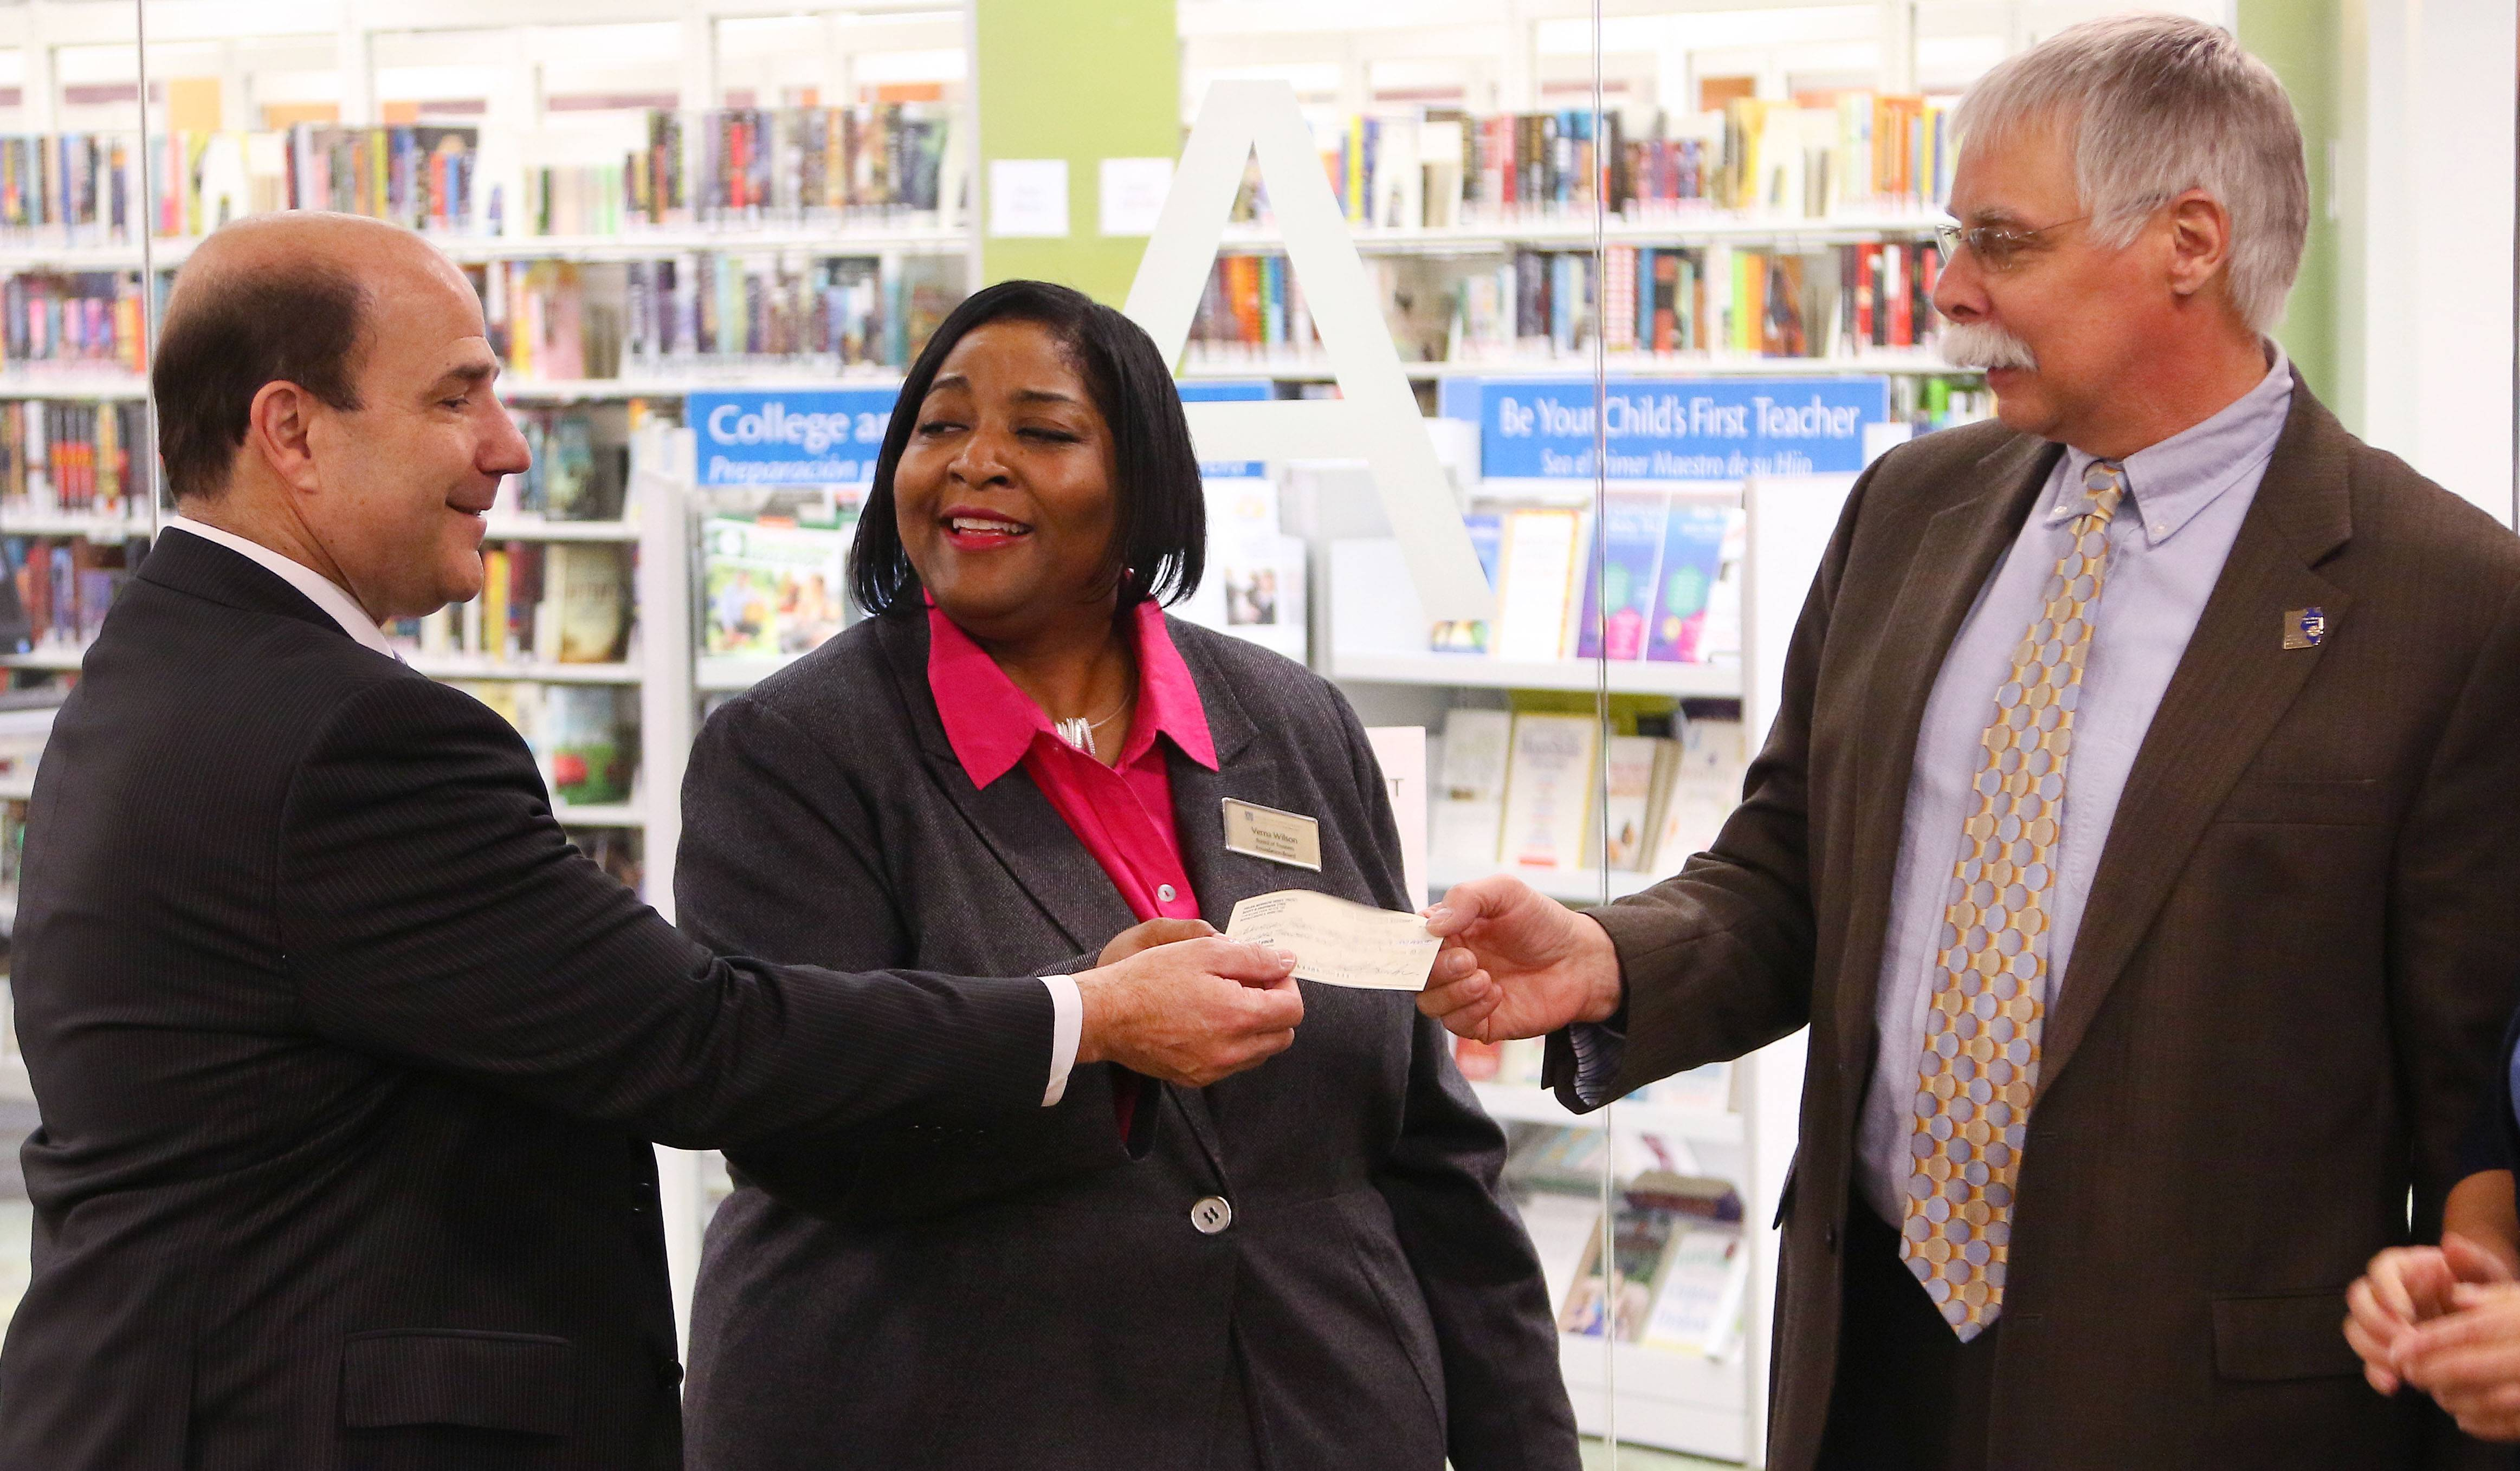 Attorney Scott B. Friedman, left, presents Verna Wilson, president of the Waukegan Public Library Foundation, and Richard Lee, right, executive director of the library, with a check for $100,000 from the estate of Helen N. Morrow, a Wilmette resident who died last fall. The money will be used for its literacy initiative, library officials said.